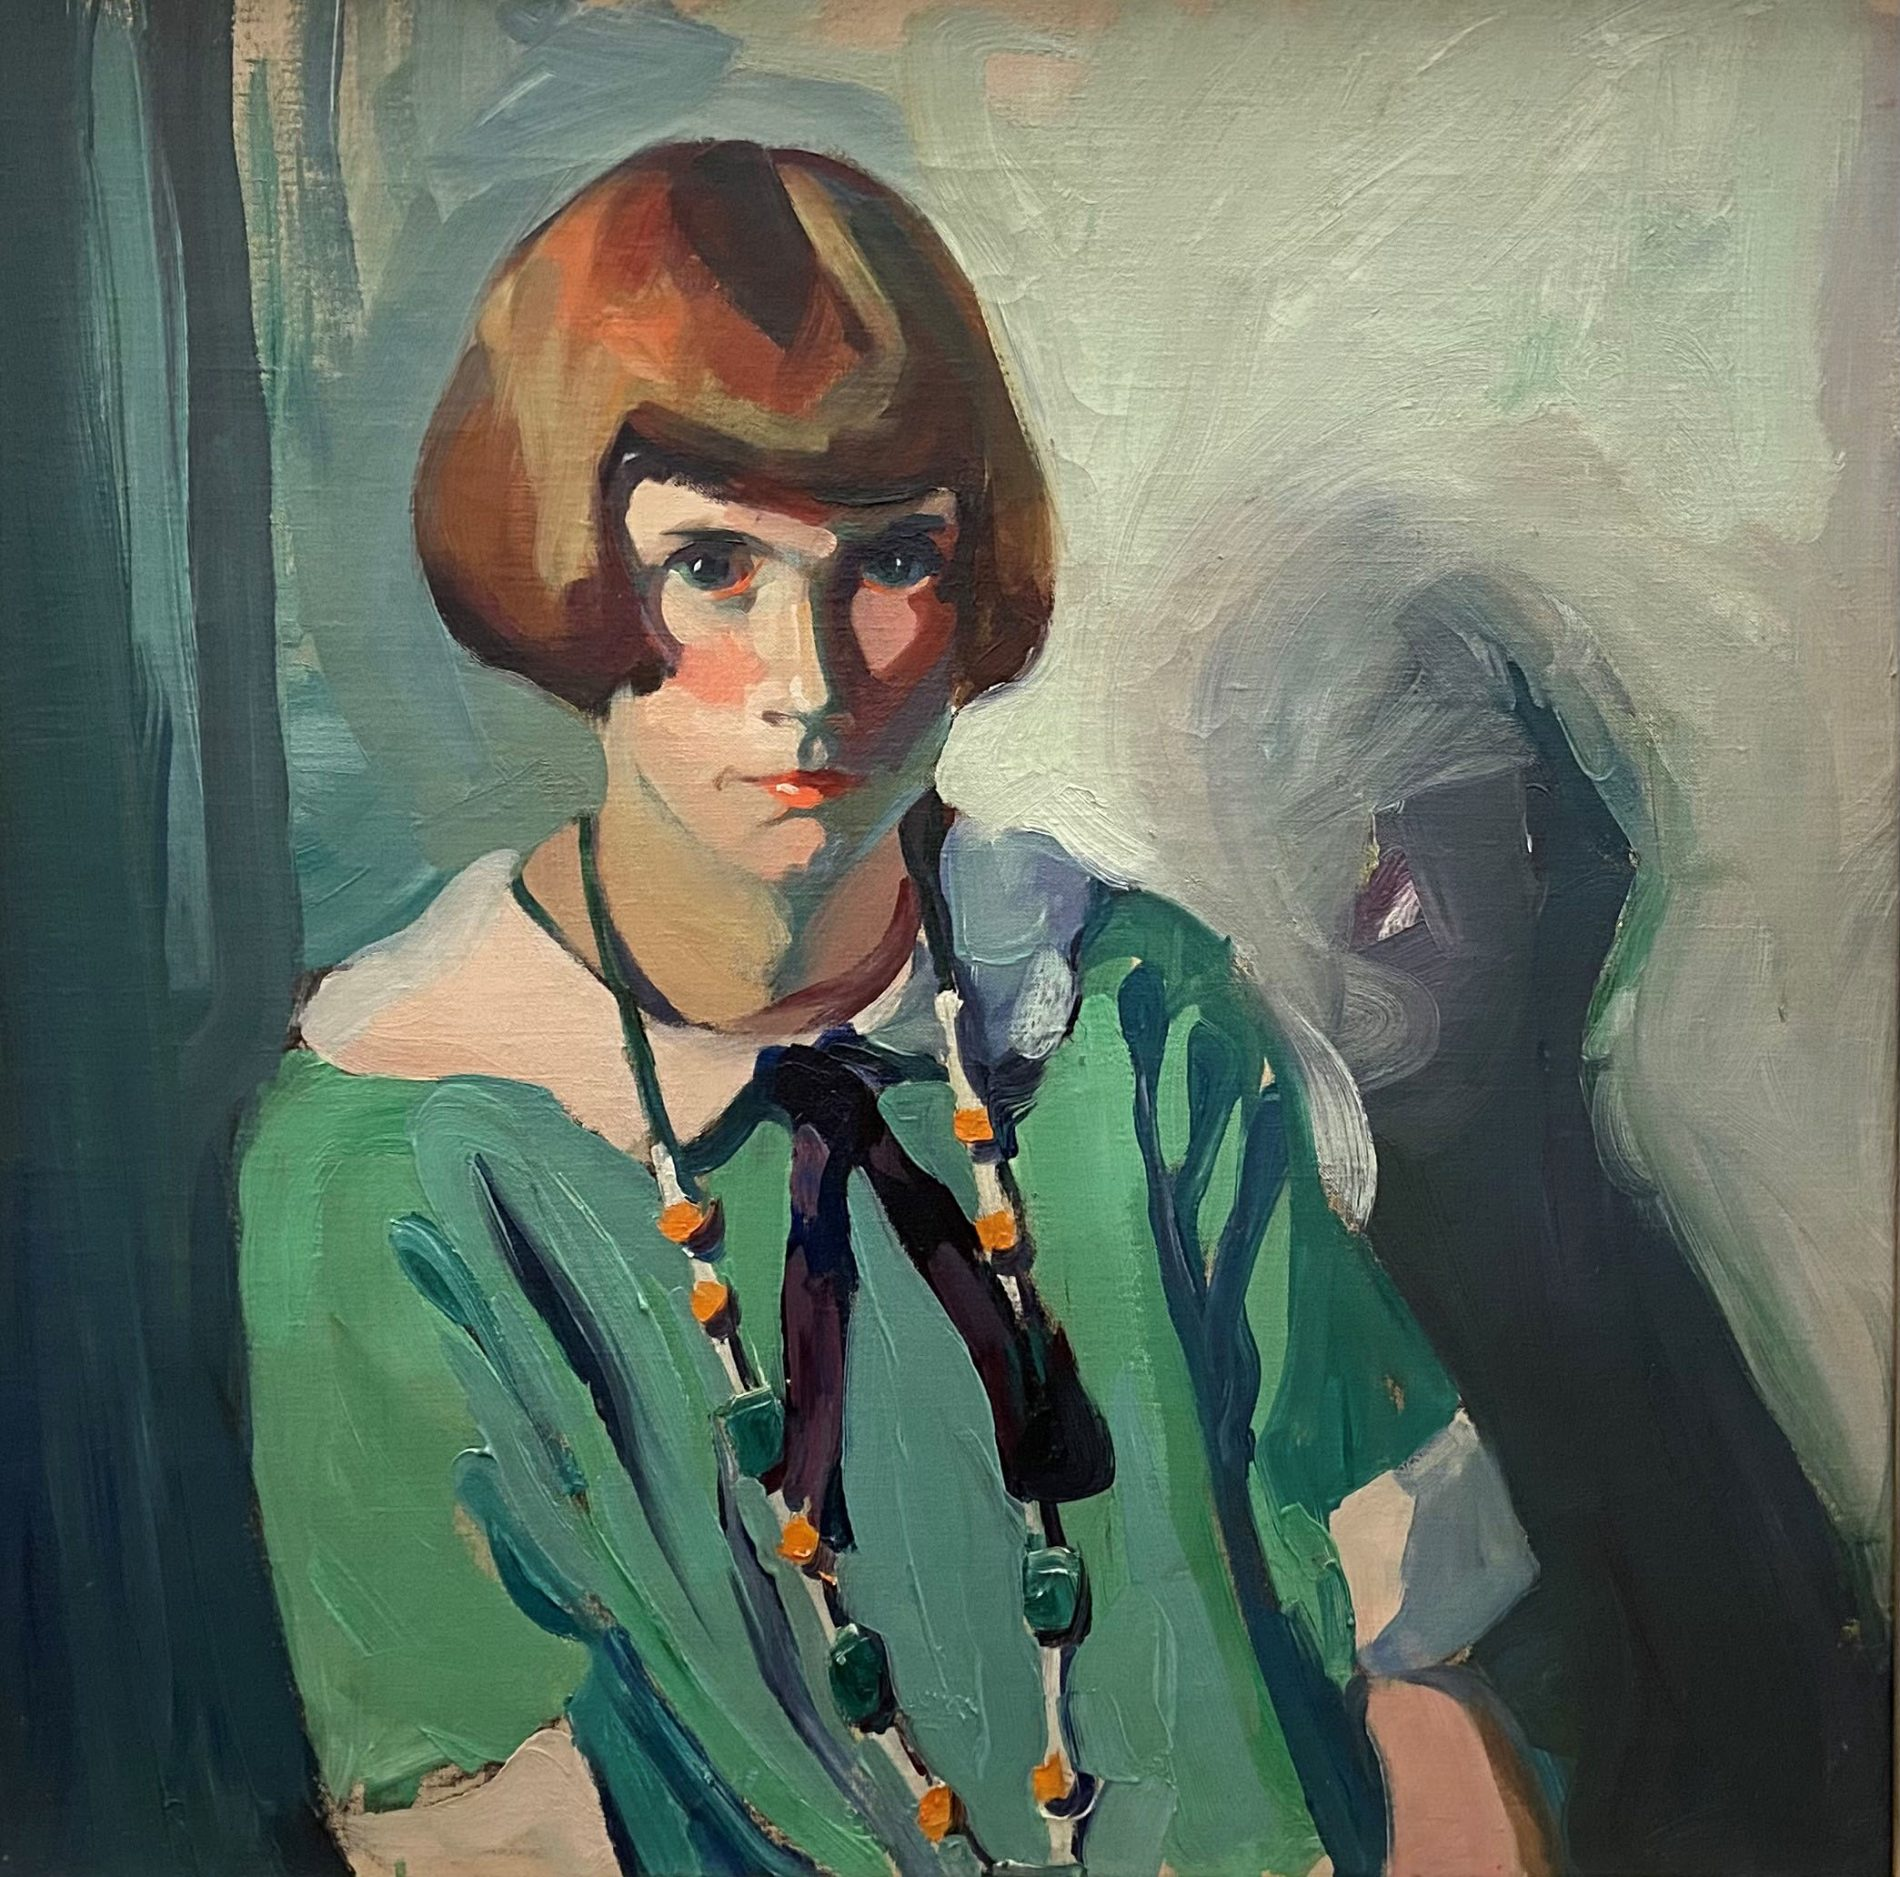 The Green Dress by Jane Peterson (1876-1965)